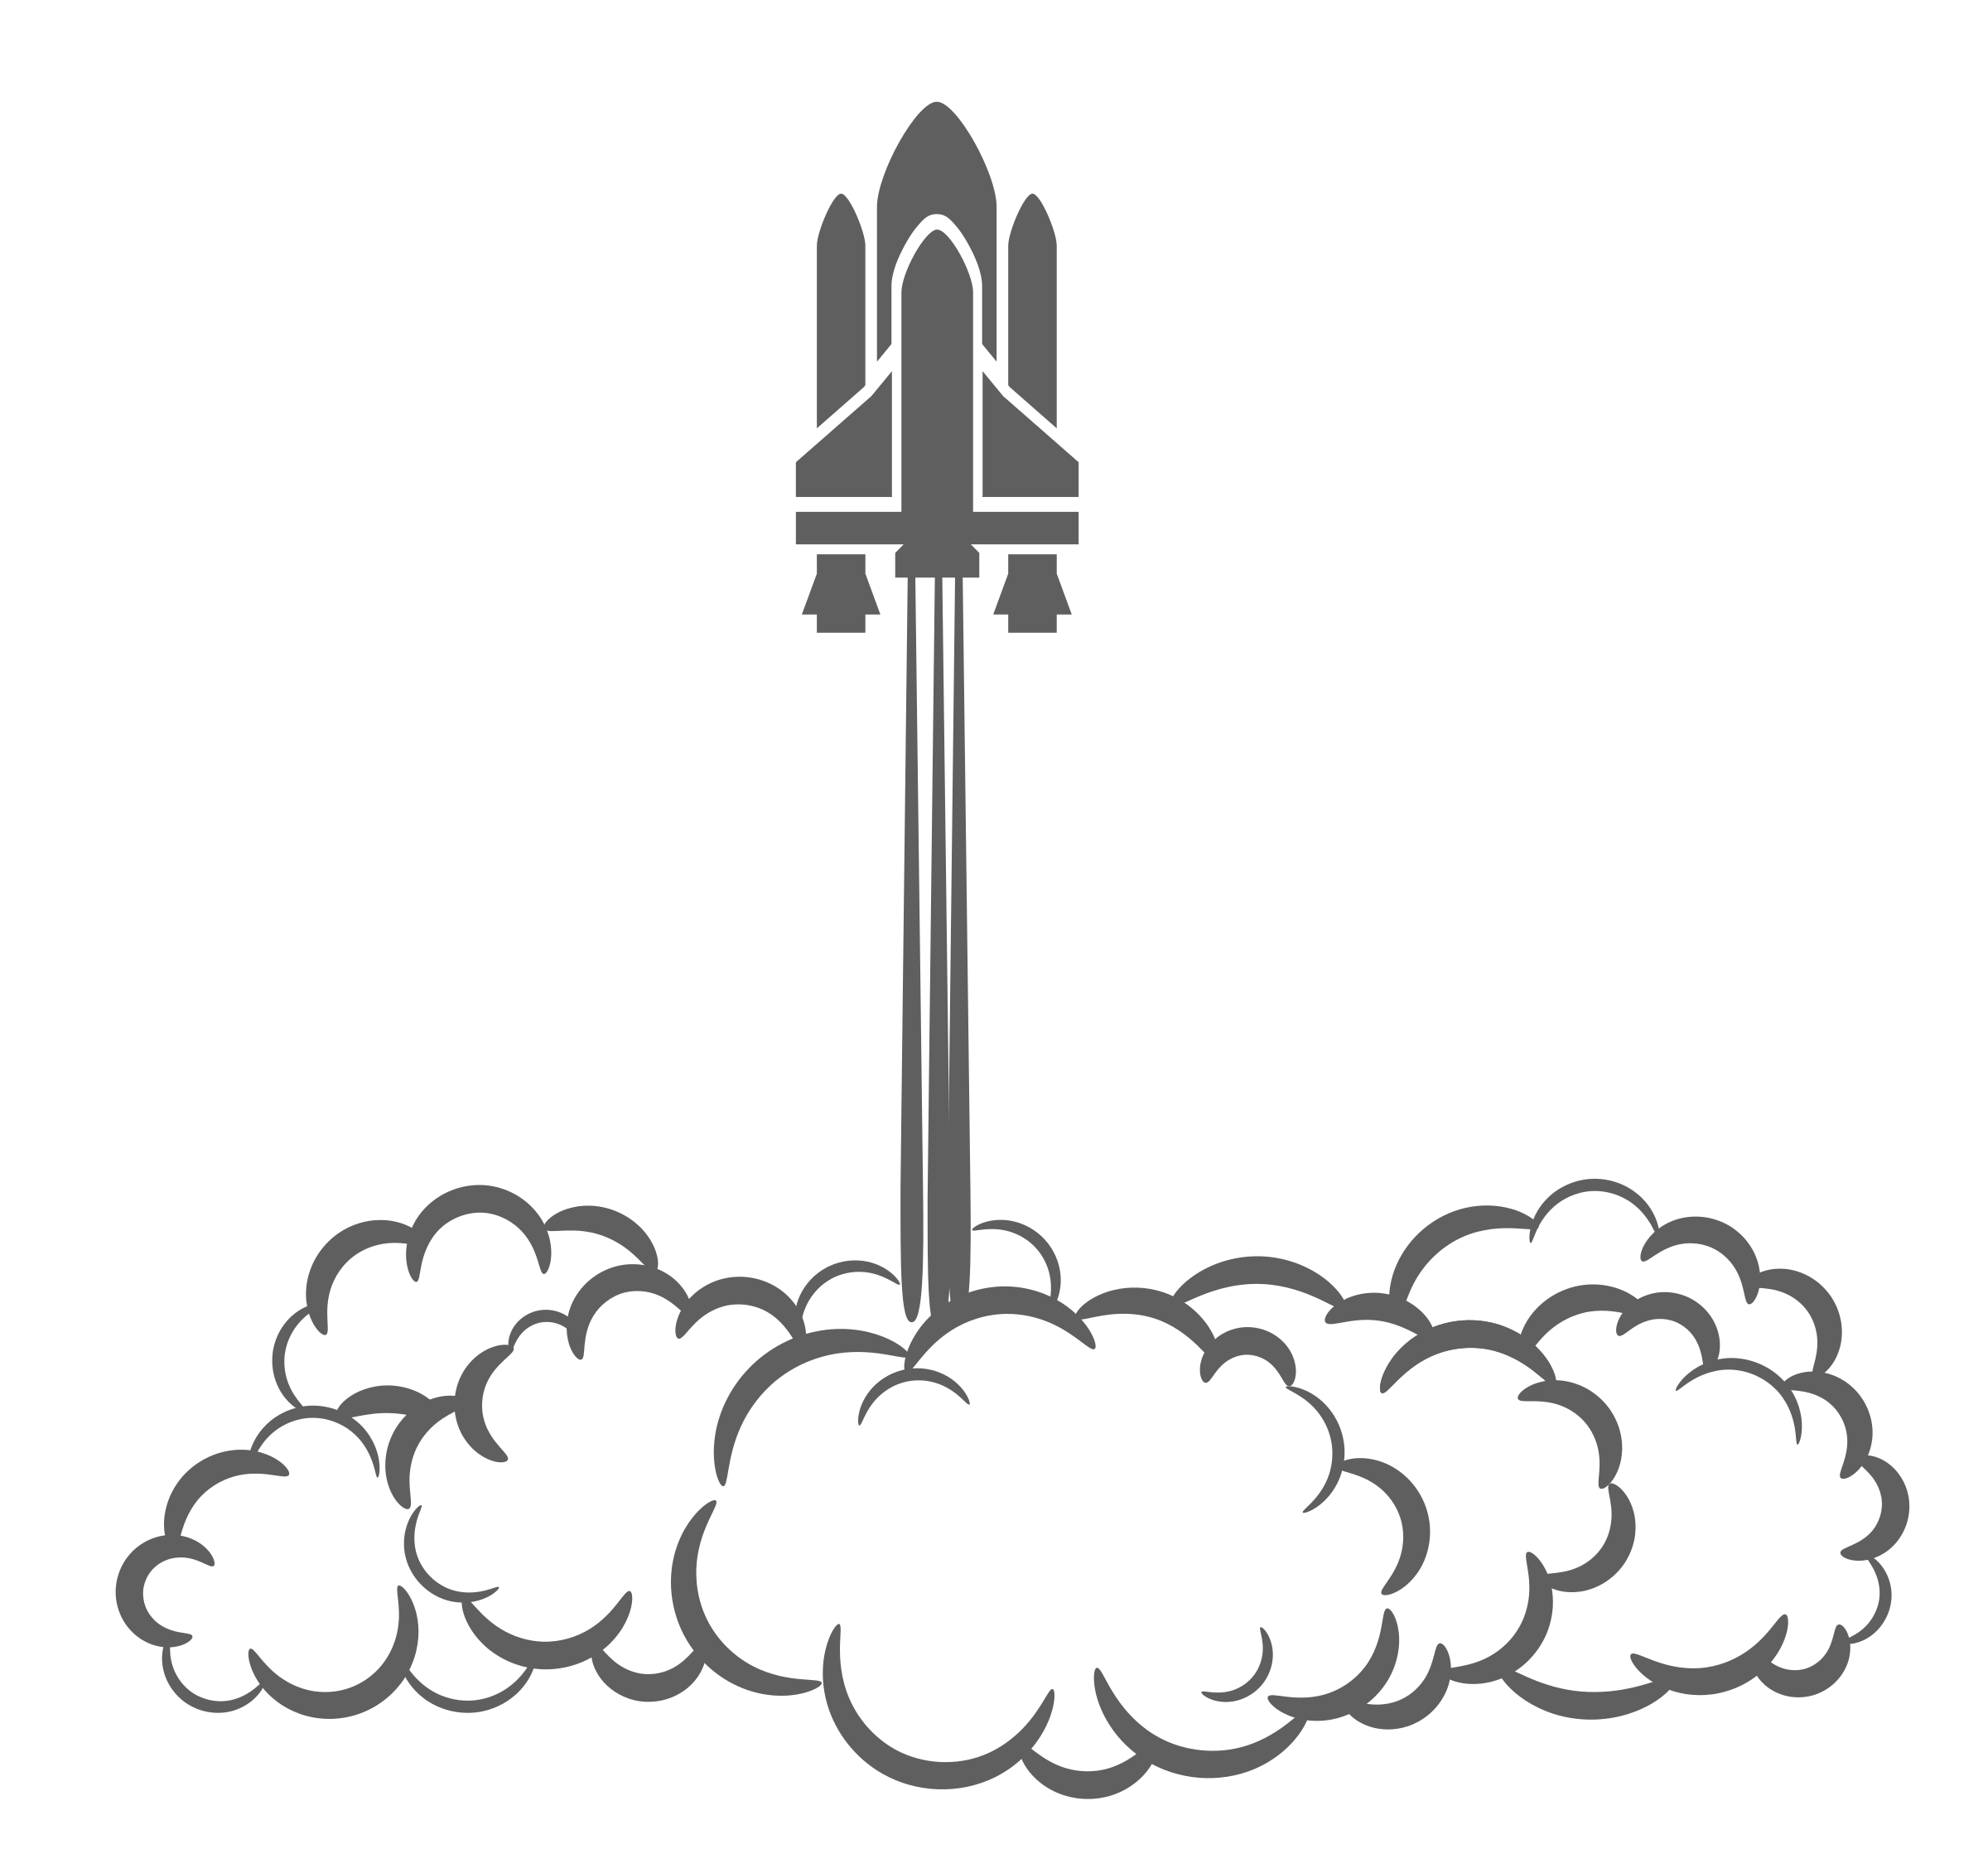 Spaceship clipart space shuttle. Smoke cloud of yywup